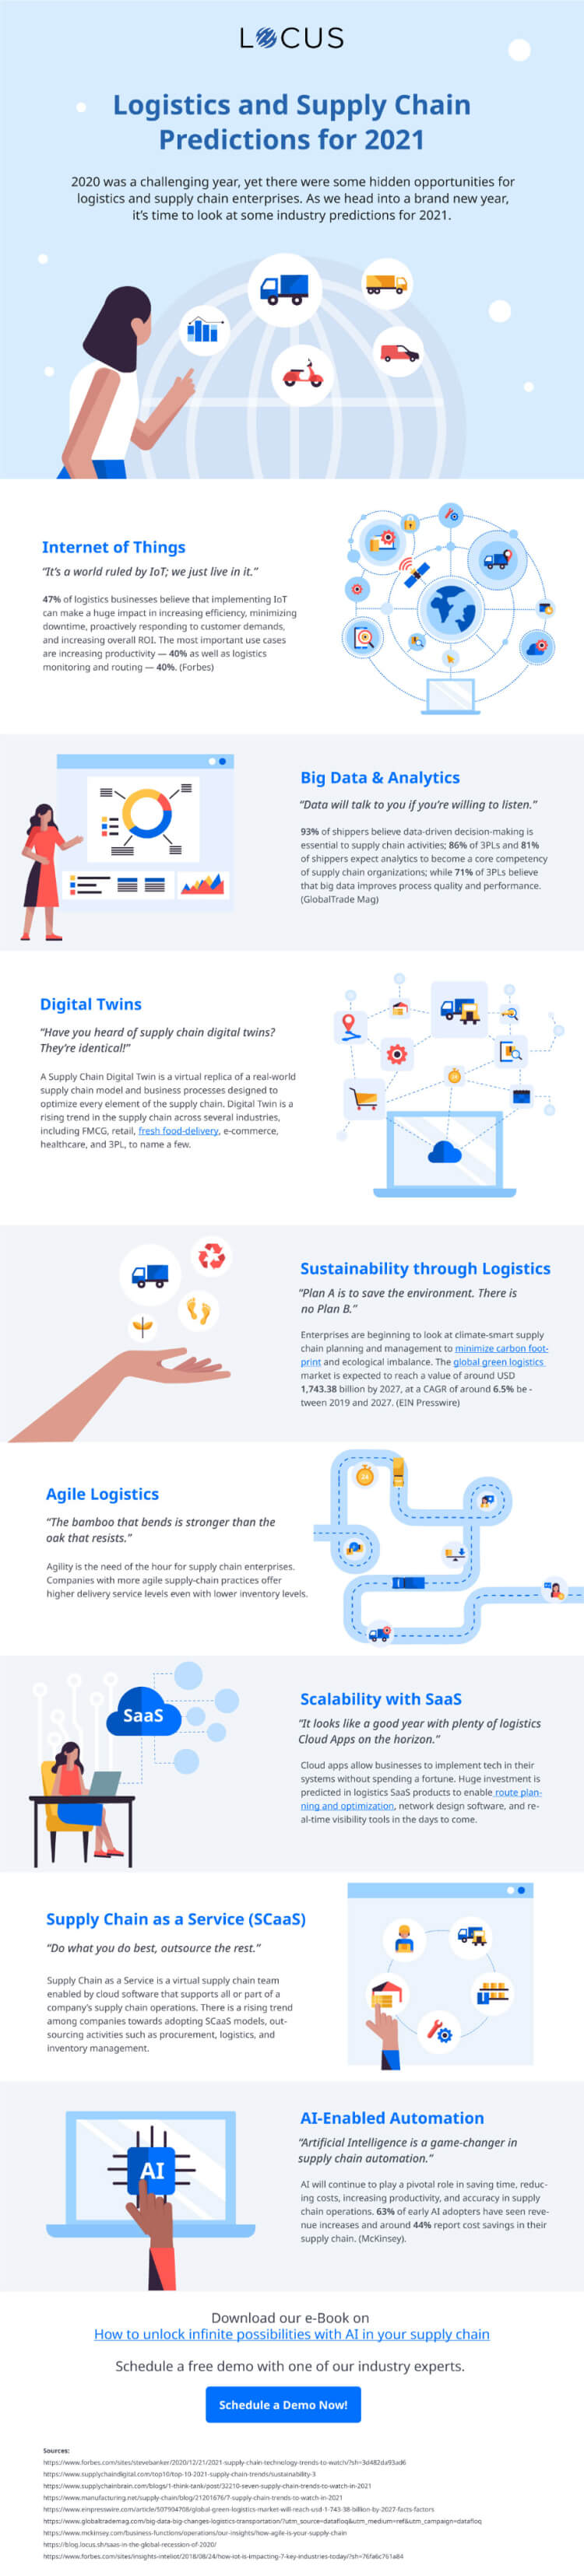 Logistics and Supply Chain Trend Predictions for 2021